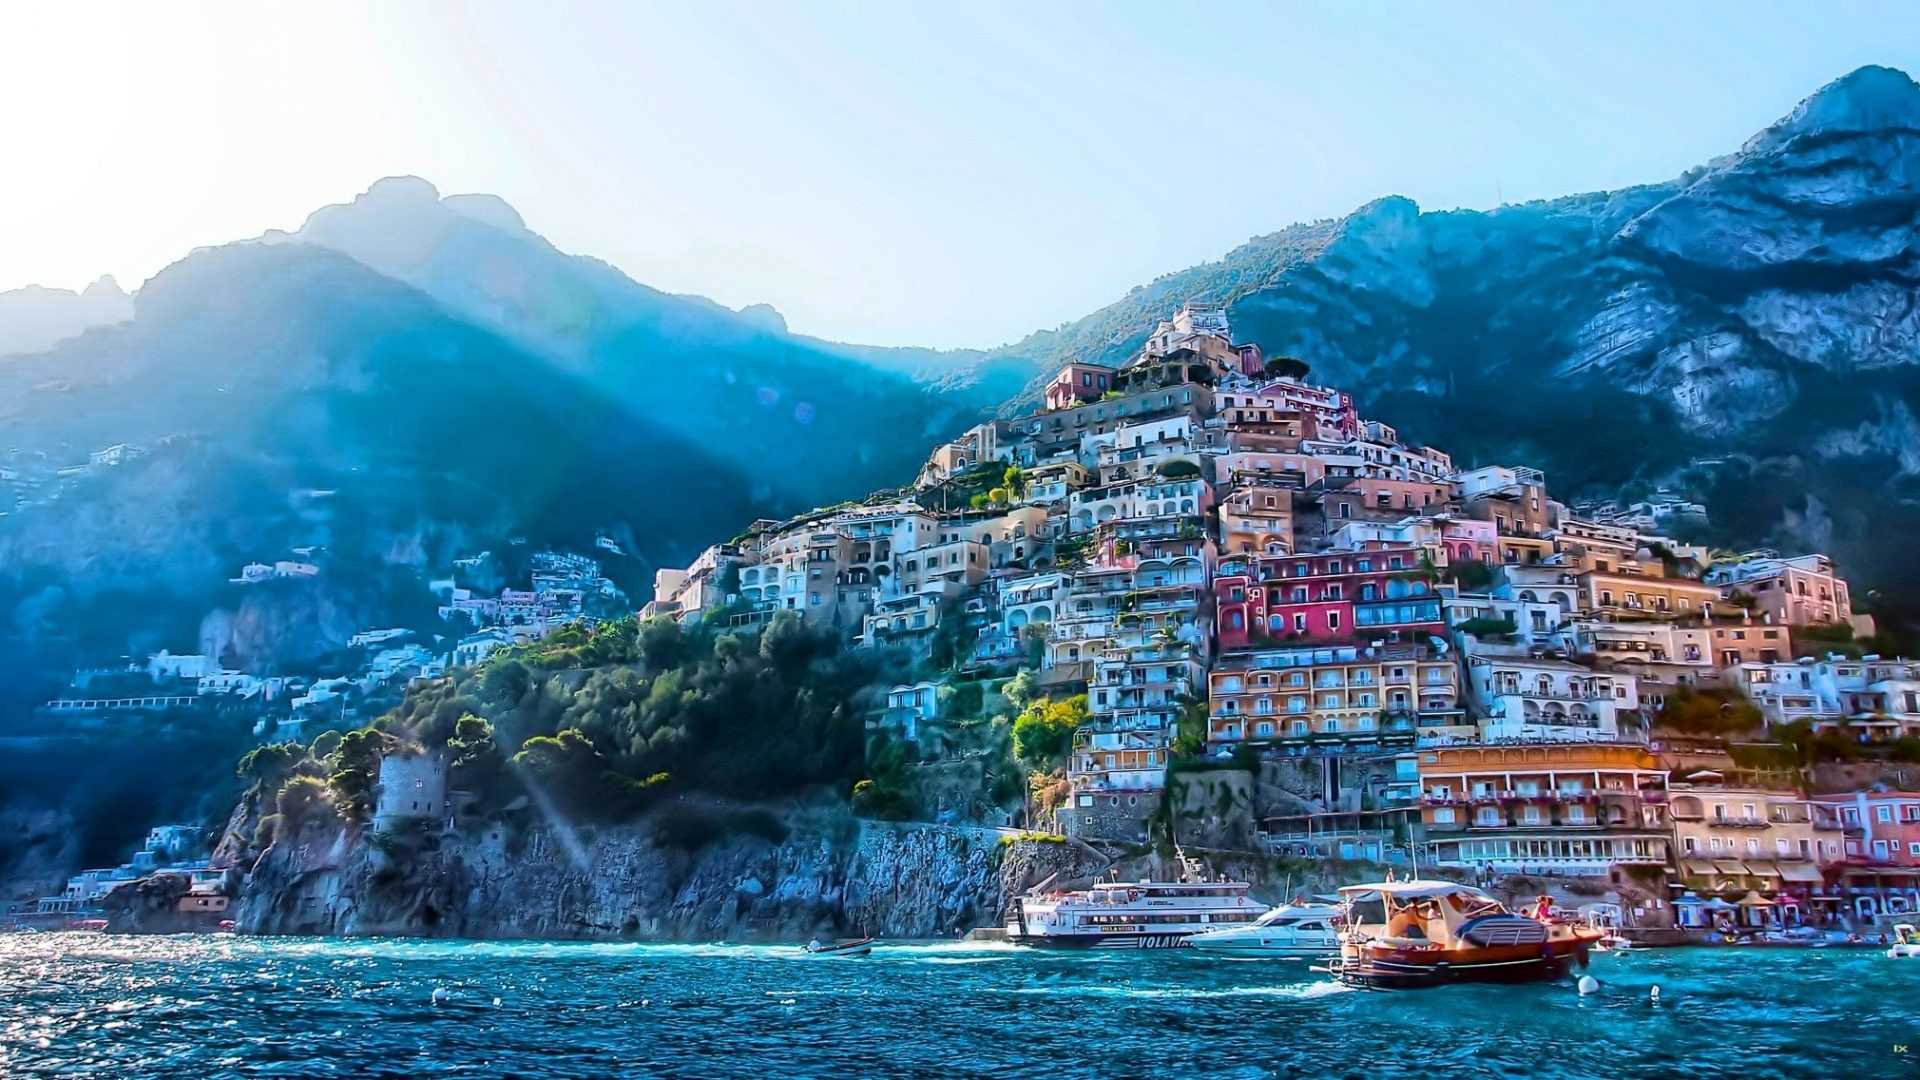 1920x1080 Other - Positano Italy Italia Town Coast Panorama Landcapes Architecture  Village Sea Sun Mountains Full HD